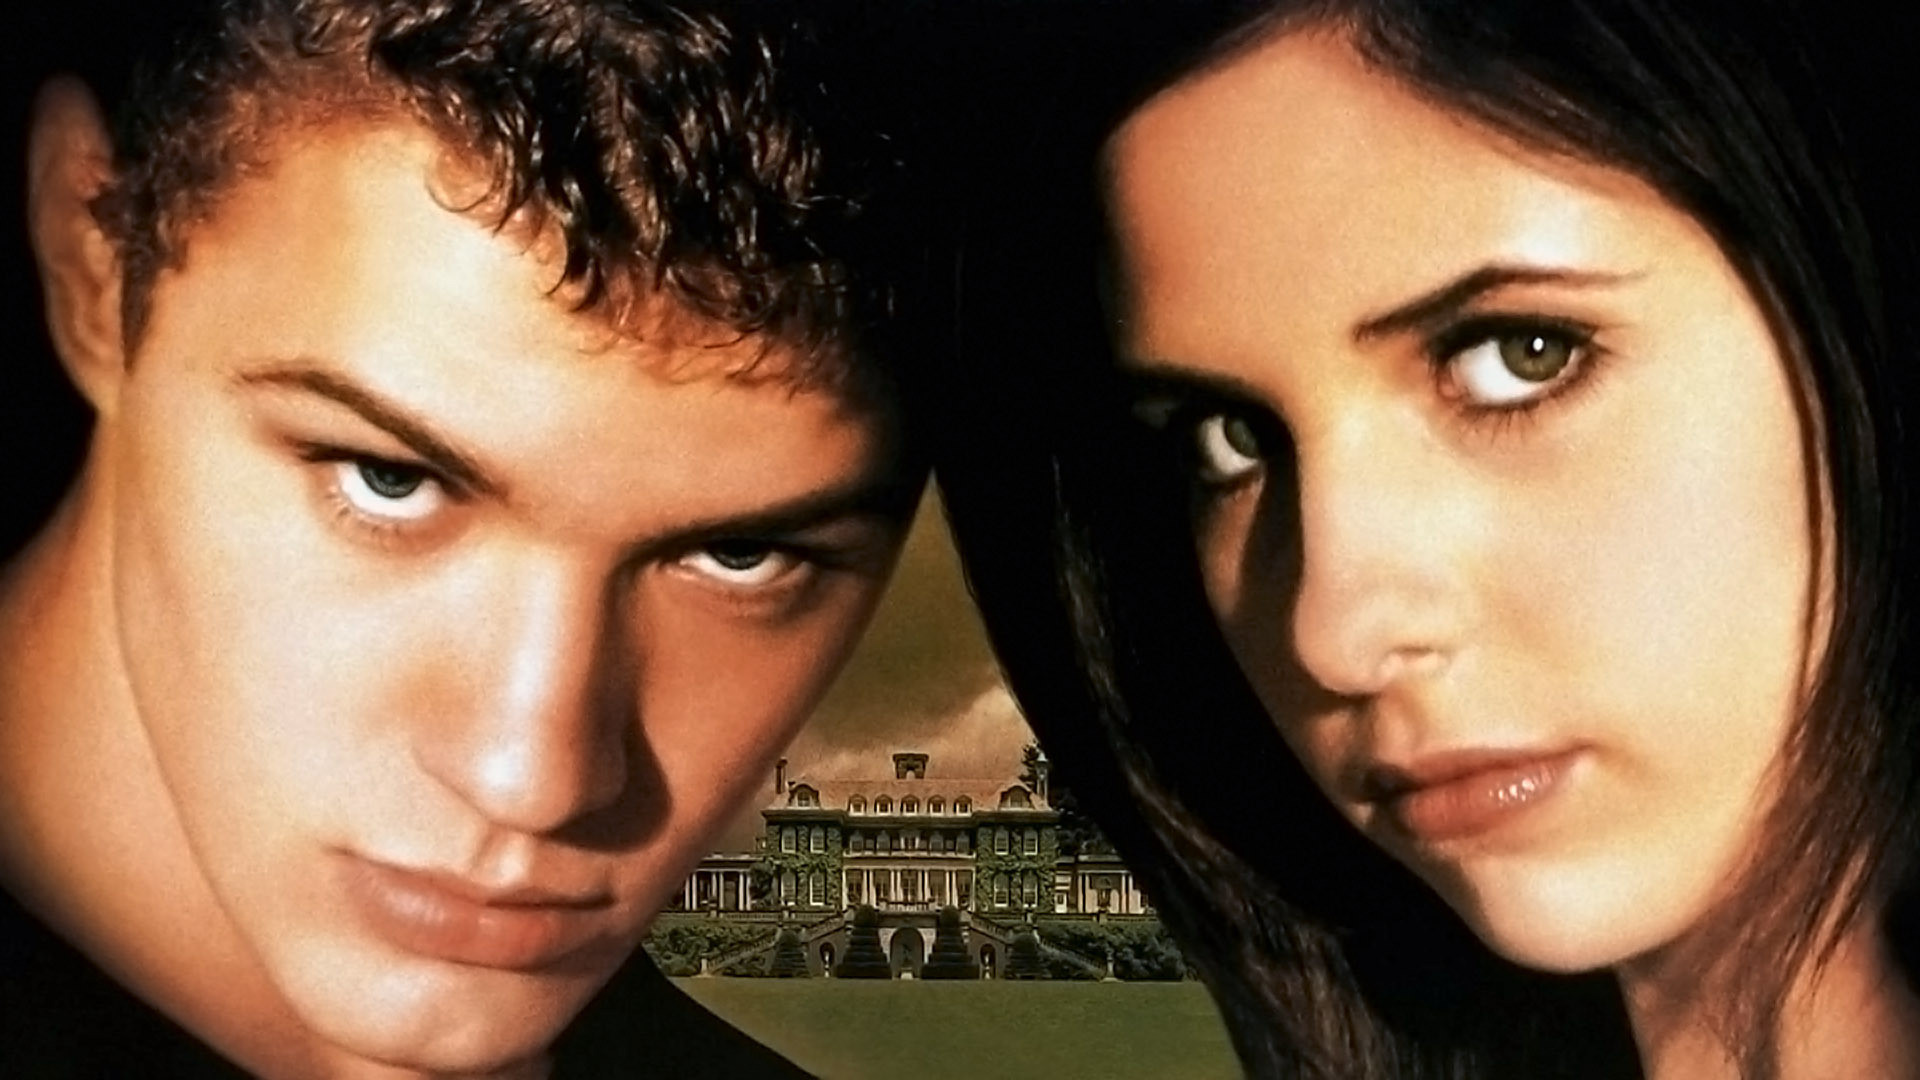 cruel intentions full movie - HD 1920×1080